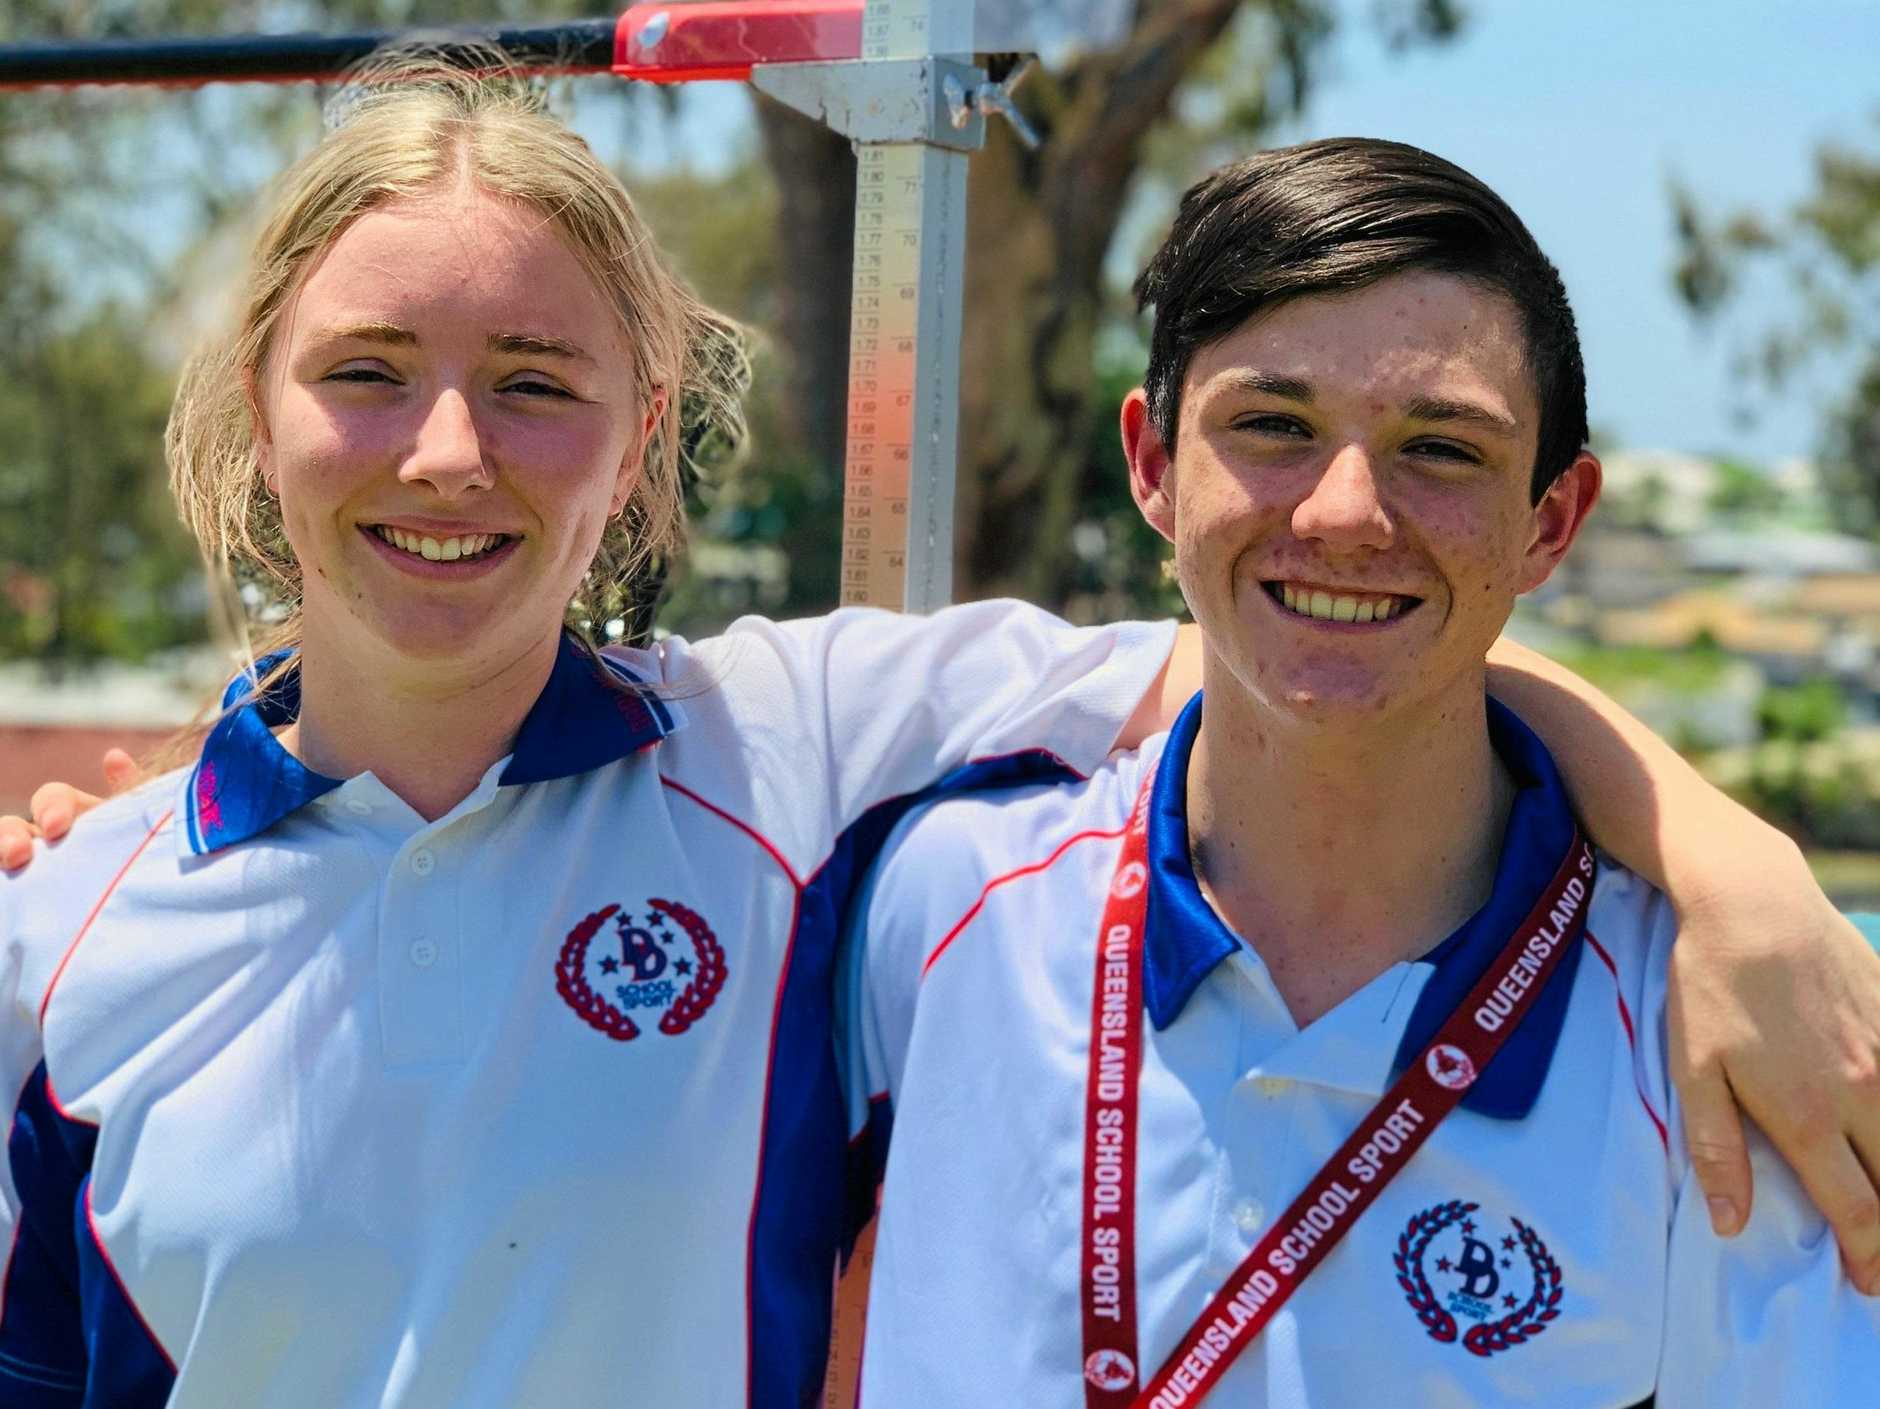 TOP JUMPERS: Lockyer District High School students Chantelle Brown and Aden Cowdroy will compete in Cairns this weekend.